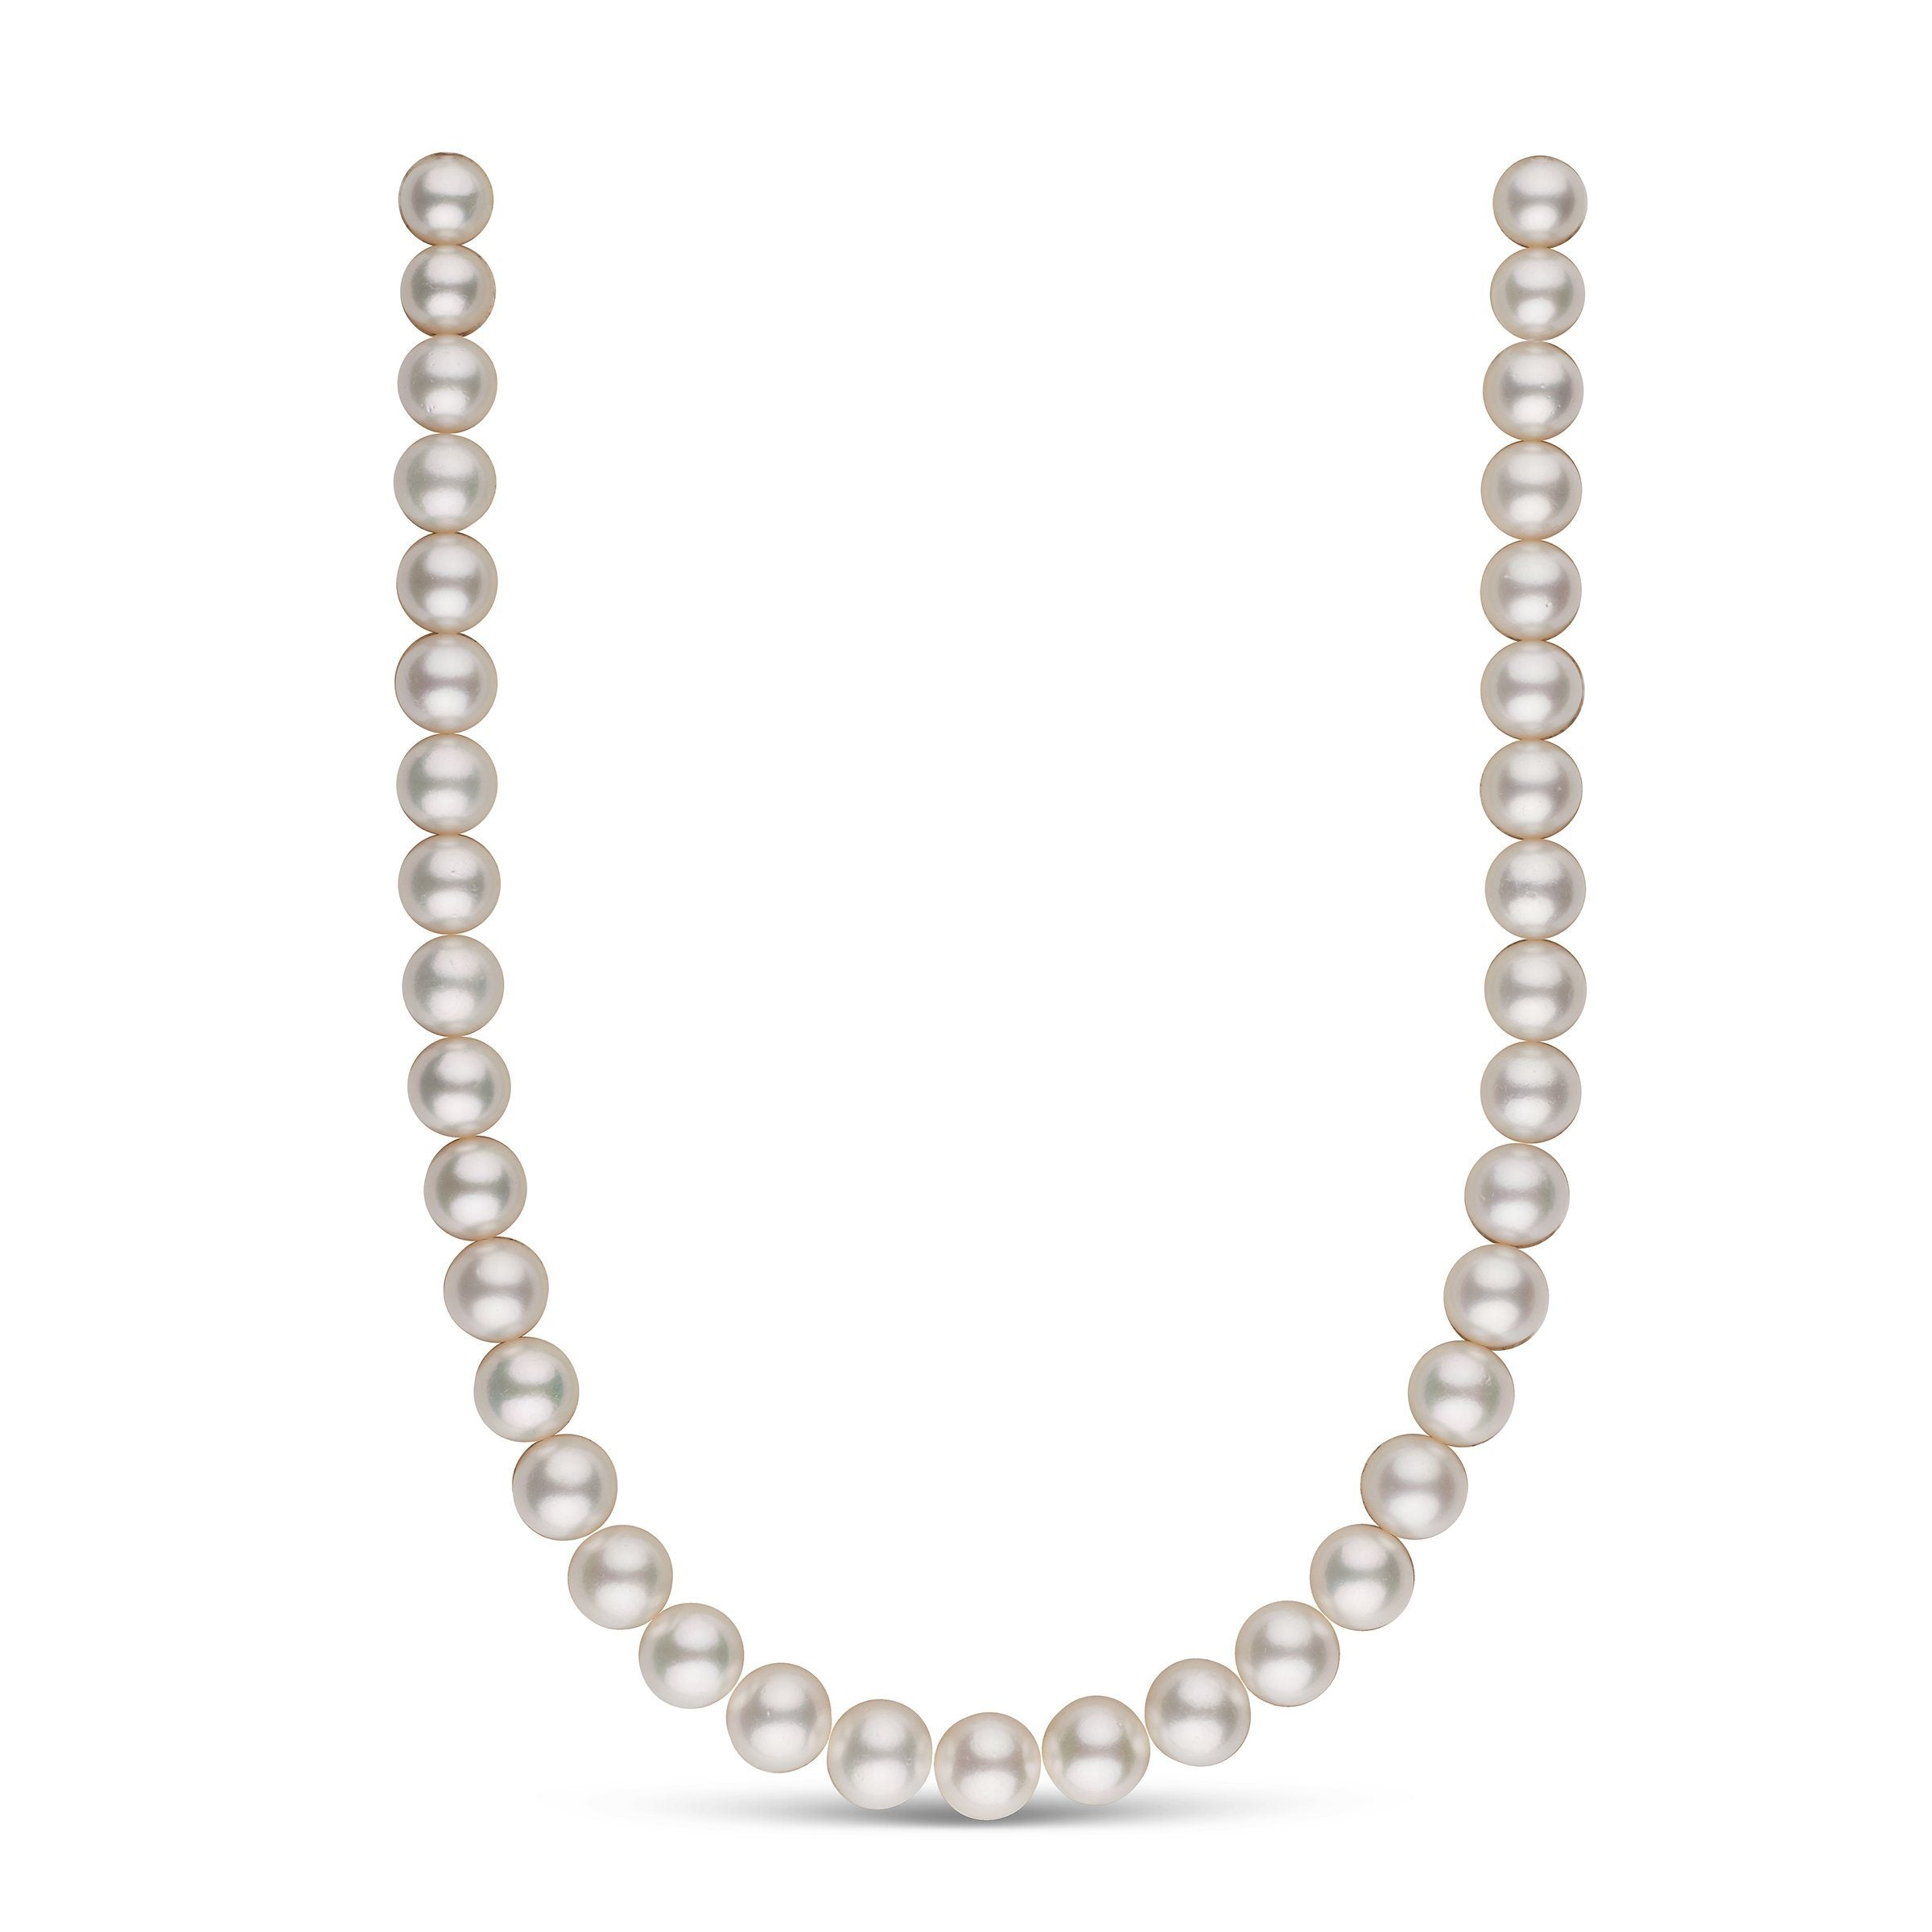 10.0-12.0 mm AA+ White South Sea Round Pearl Necklace